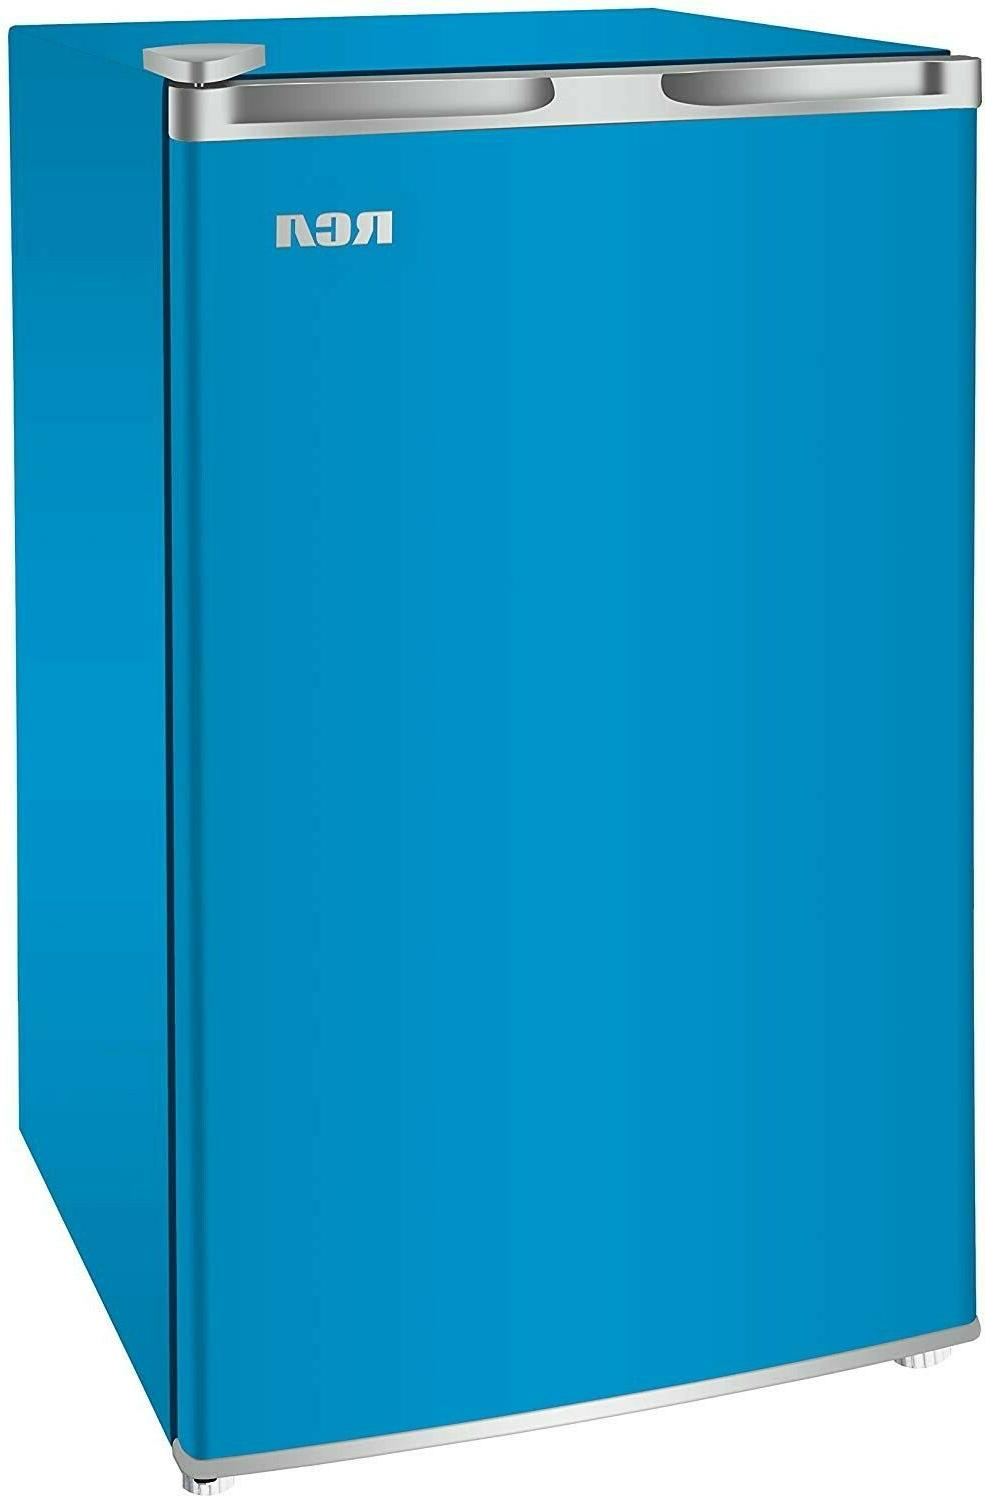 RCA Mini Fridge Stainless Steel